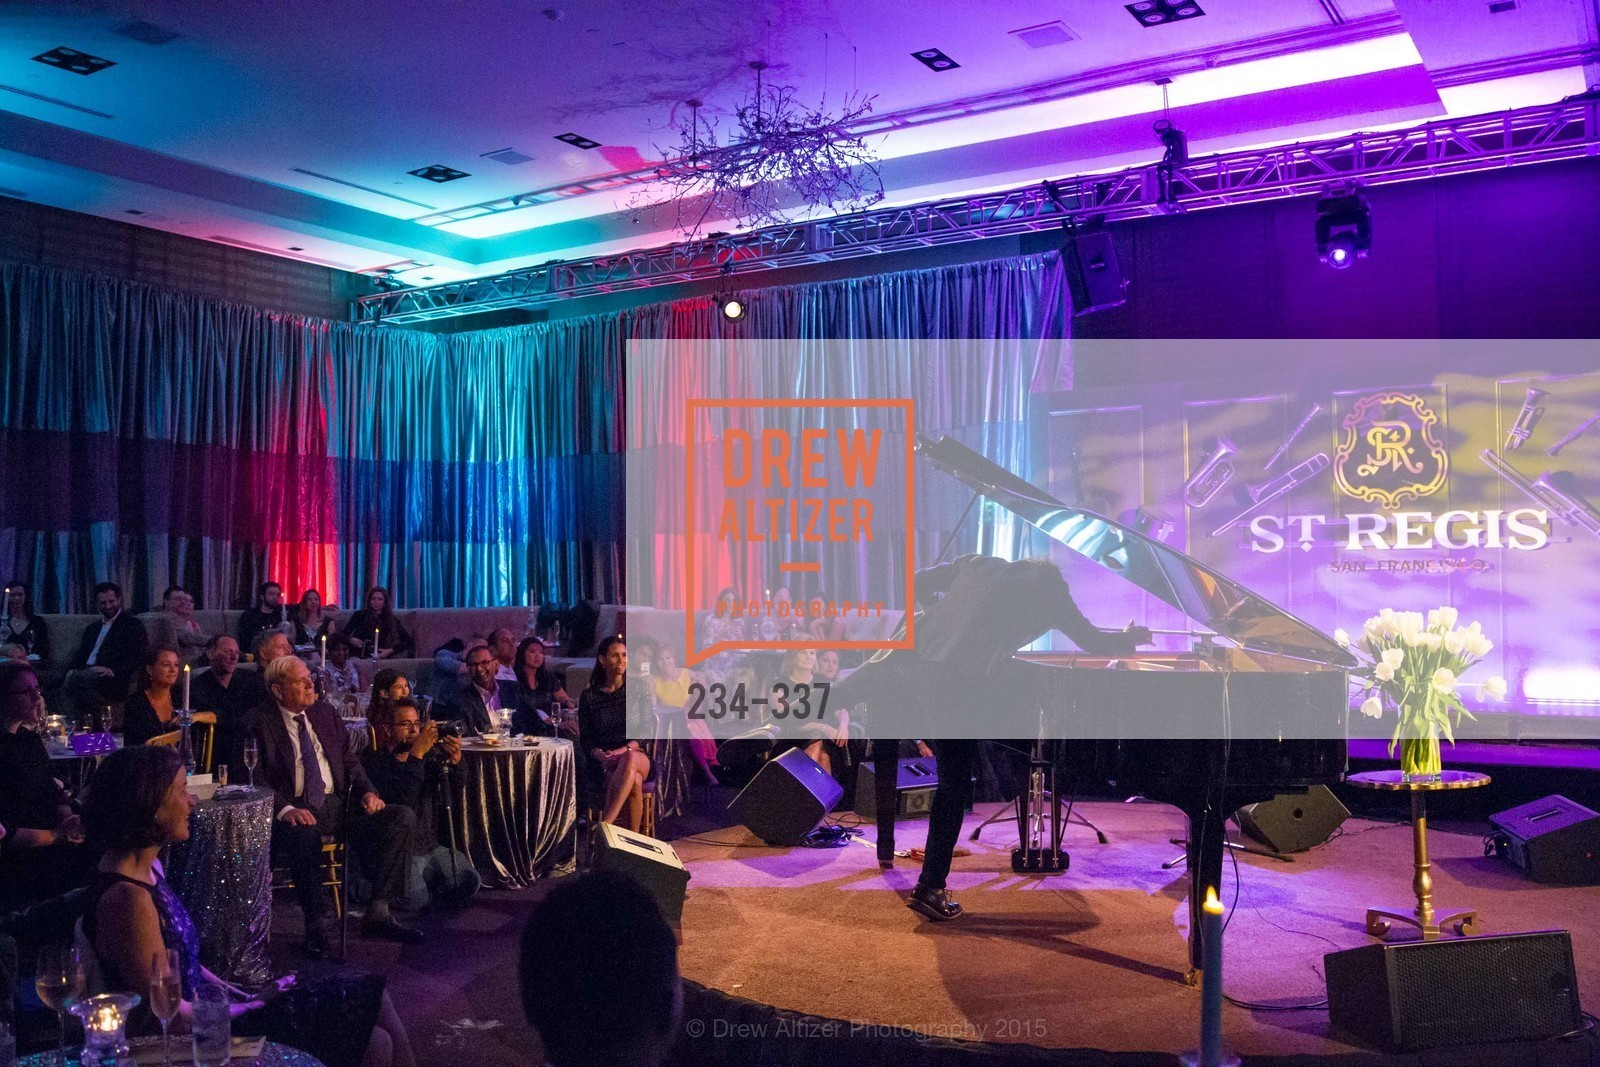 Jamie Cullum, Jazz Legends At St. Regis Presents Jamie Cullum, St. Regis, October 3rd, 2015,Drew Altizer, Drew Altizer Photography, full-service agency, private events, San Francisco photographer, photographer california